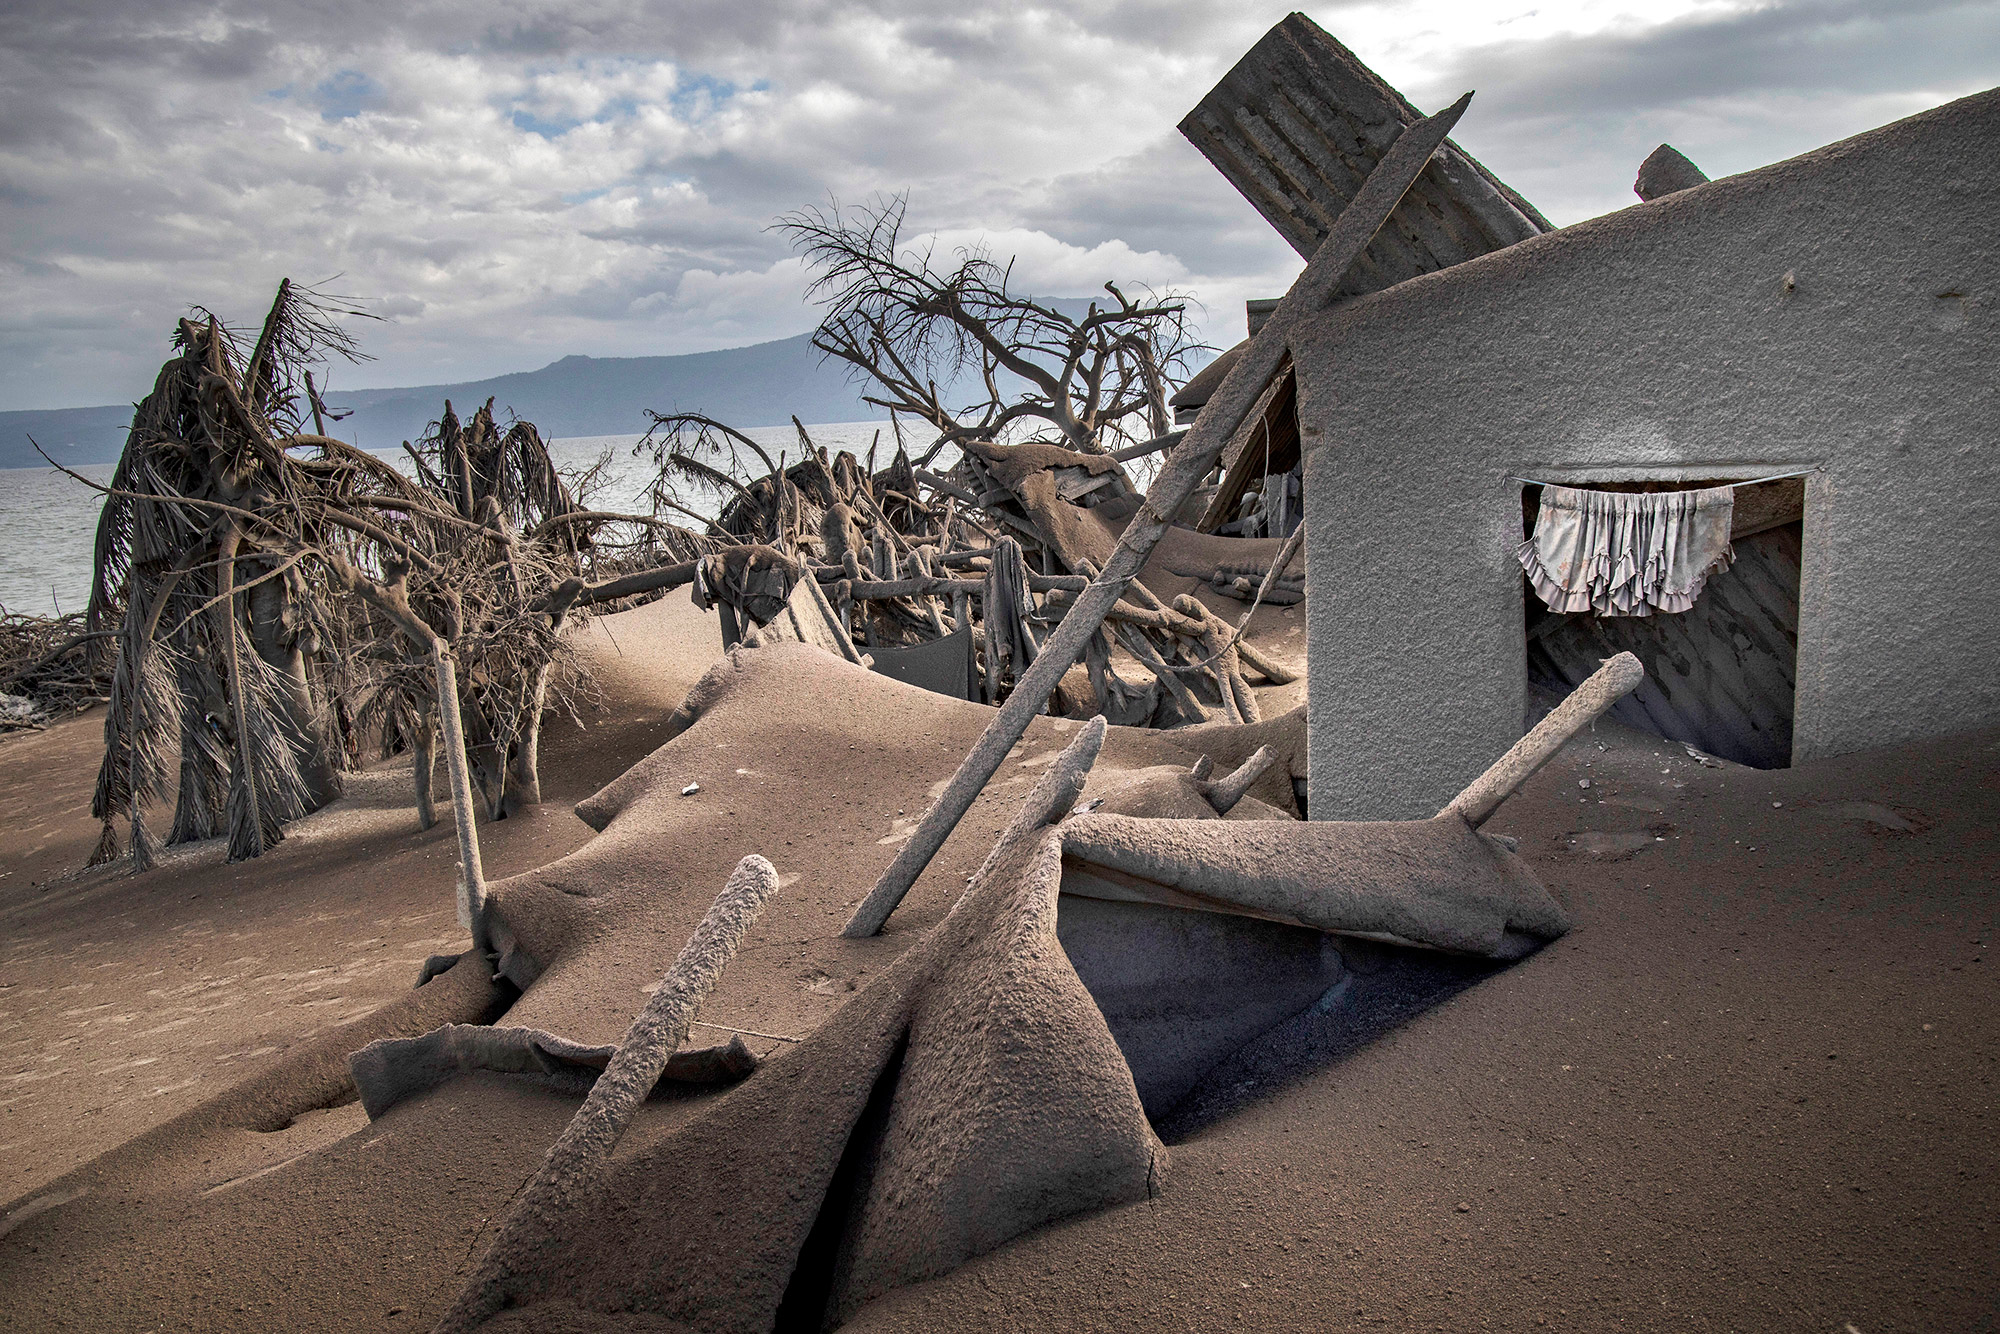 TAAL VOLCANO ISLAND, PHILIPPINES - JANUARY 14: Houses near Taal Volcano's crater are seen buried in volcanic ash from the volcano's eruption on January 14, 2020 in Taal Volcano Island, Batangas province, Philippines. The Philippine Institute of Volcanology and Seismology raised the alert level to four out of five, warning that a hazardous eruption could take place anytime, as authorities have evacuated tens of thousands of people from the area. An estimated $10 million worth of crops and livestock have been damaged by the on-going eruption, according to the country's agriculture department. (Photo by Ezra Acayan/Getty Images)